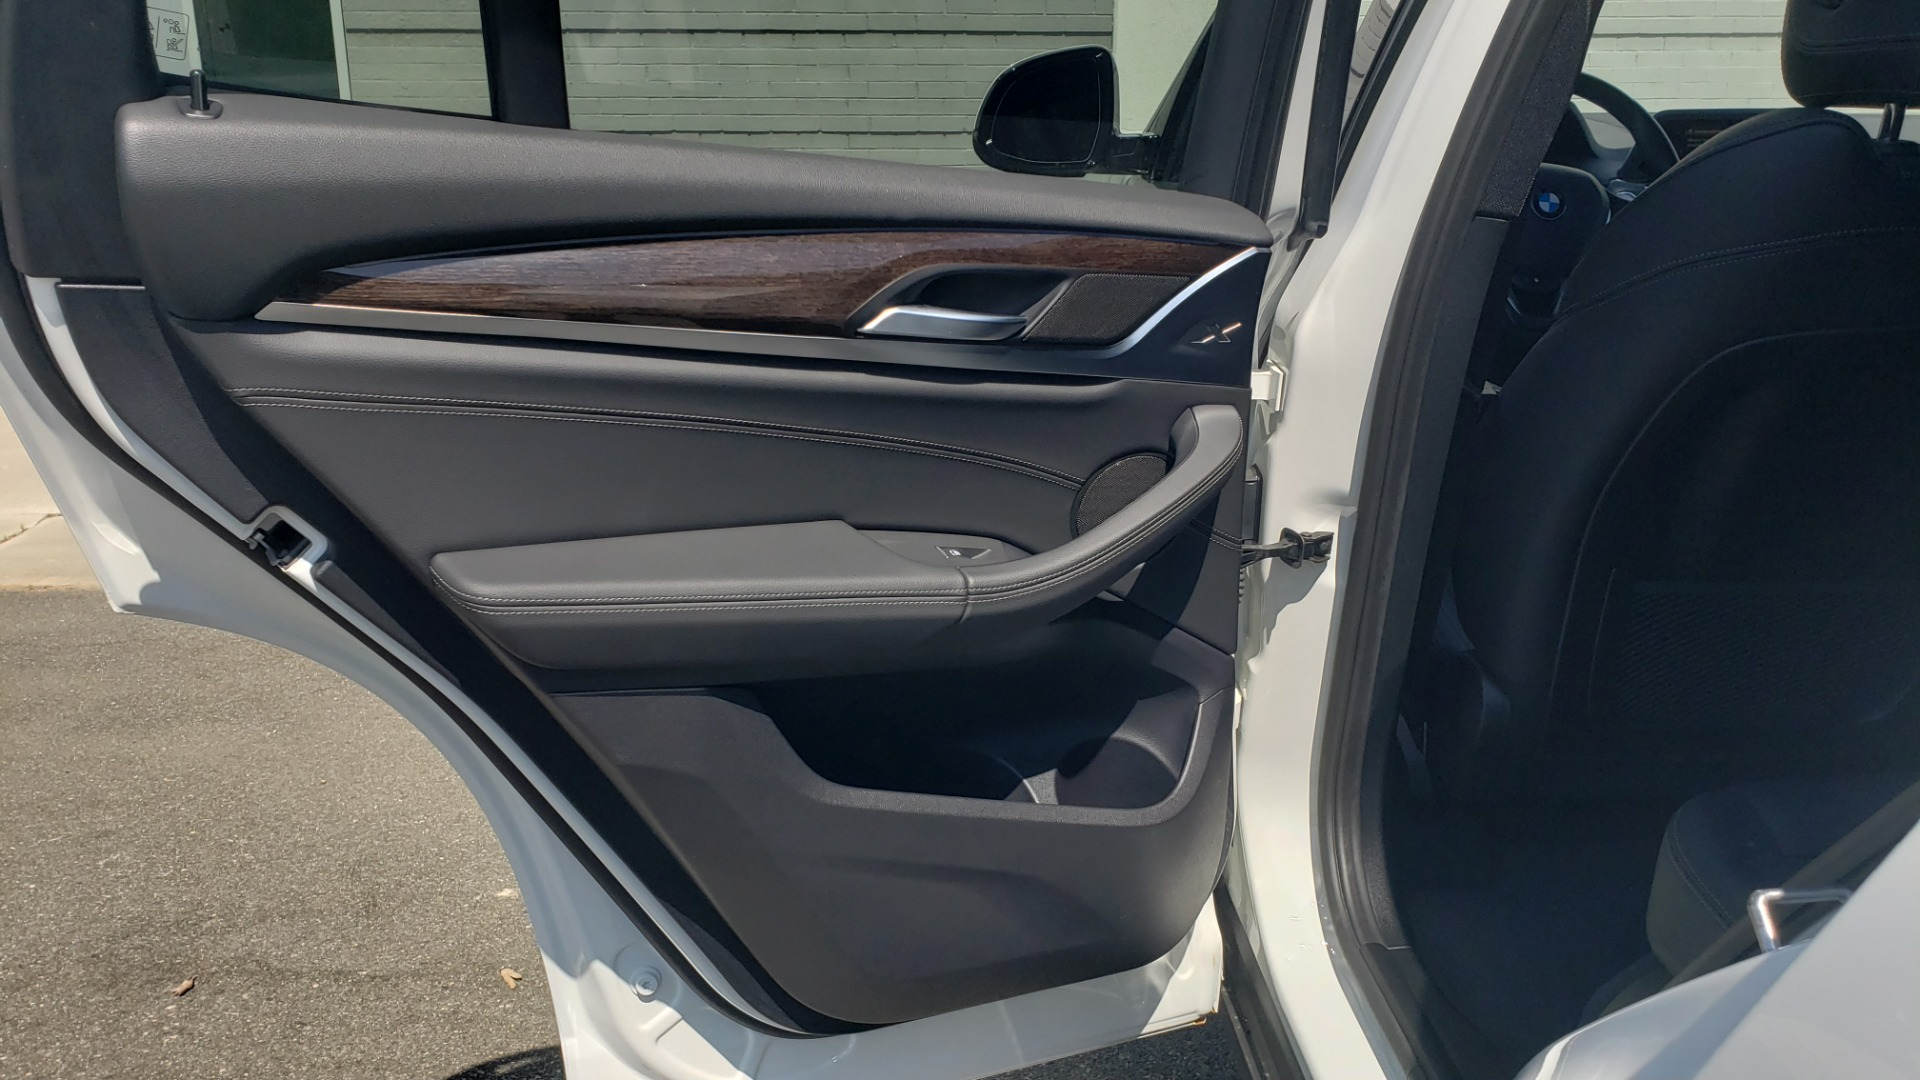 Used 2018 BMW X3 XDRIVE30I / CONV PKG / PANO-ROOF / HTD STS / REARVIEW for sale $33,995 at Formula Imports in Charlotte NC 28227 61